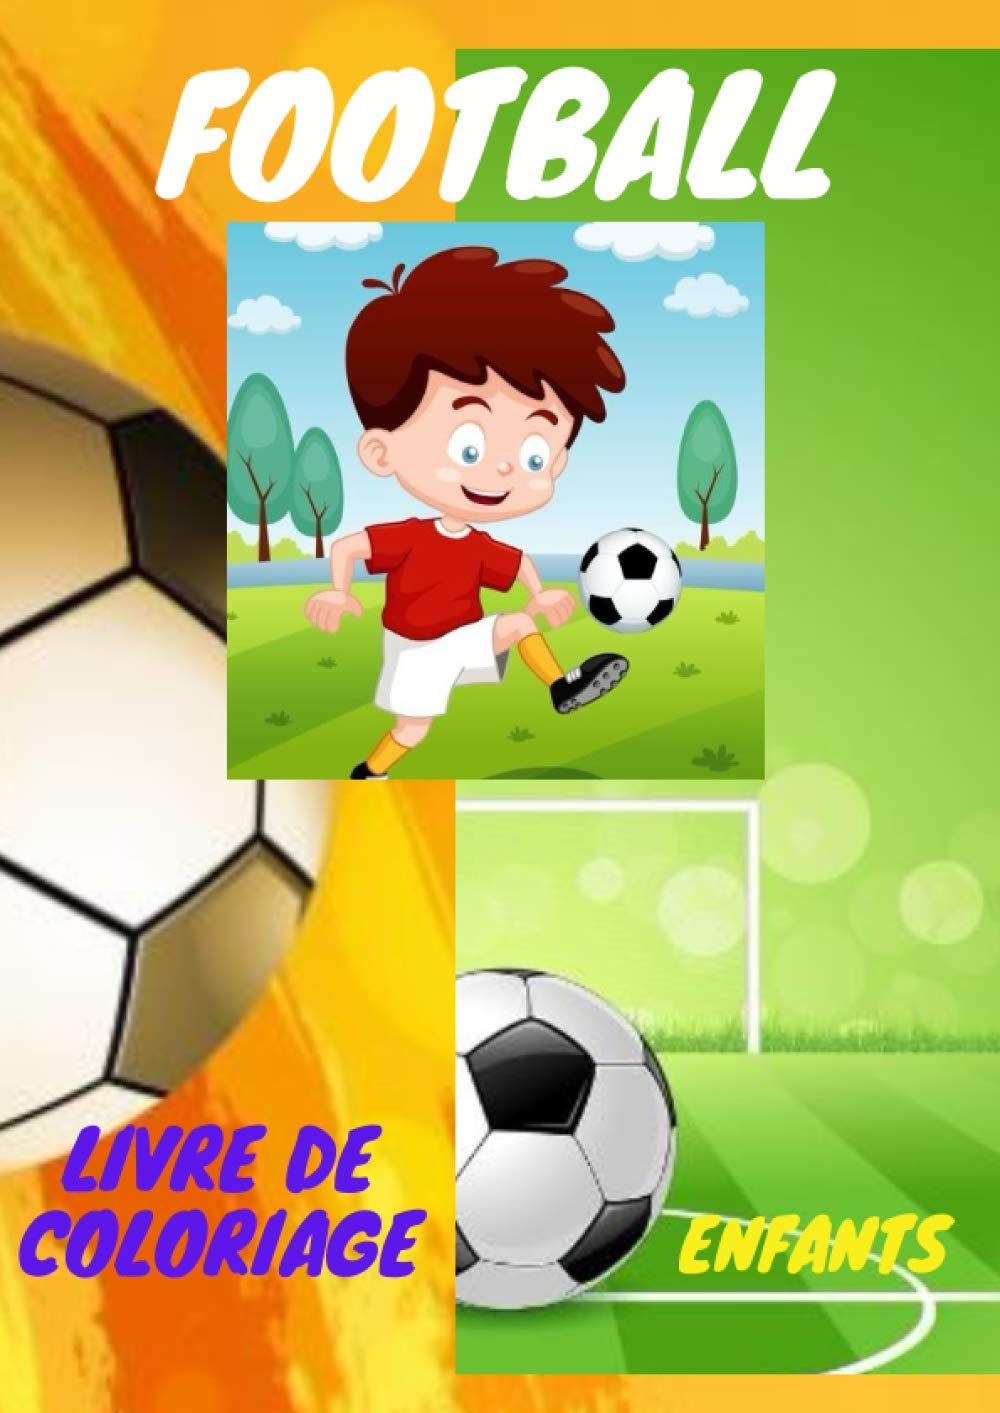 Football Livre De Coloriage Enfants French Edition Bentabet Sami 9798686983755 Amazon Com Books